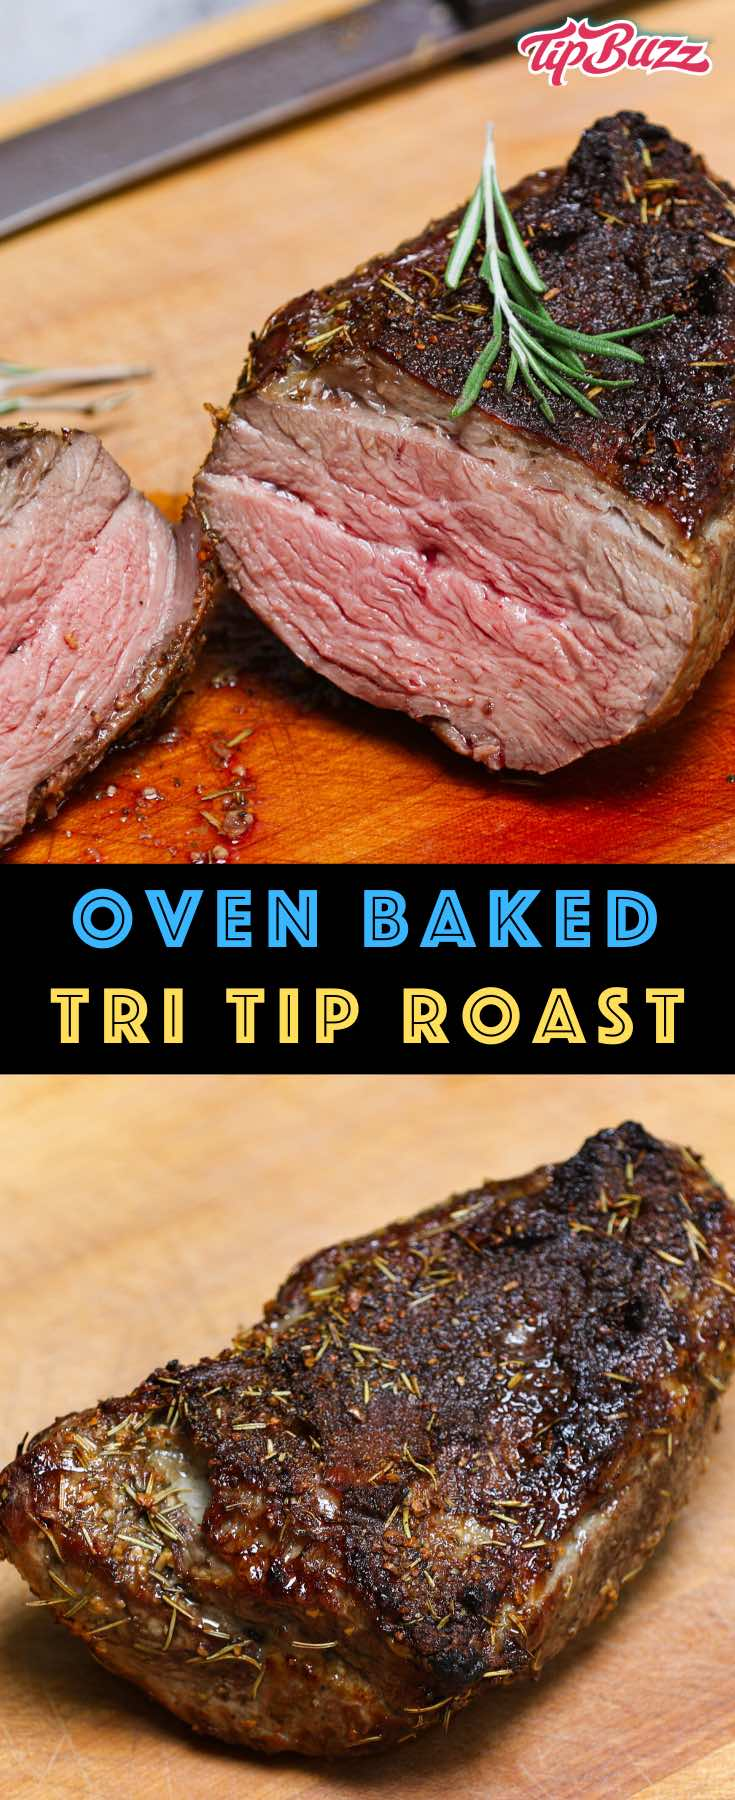 Tri Tip Roast Santa Maria style with a delicious crust and juicy beef! It's easy to make in the oven for dinner with friends or a holiday feast. Just a few simple seasonings to produce amazing flavor! #tritip #tritiproast